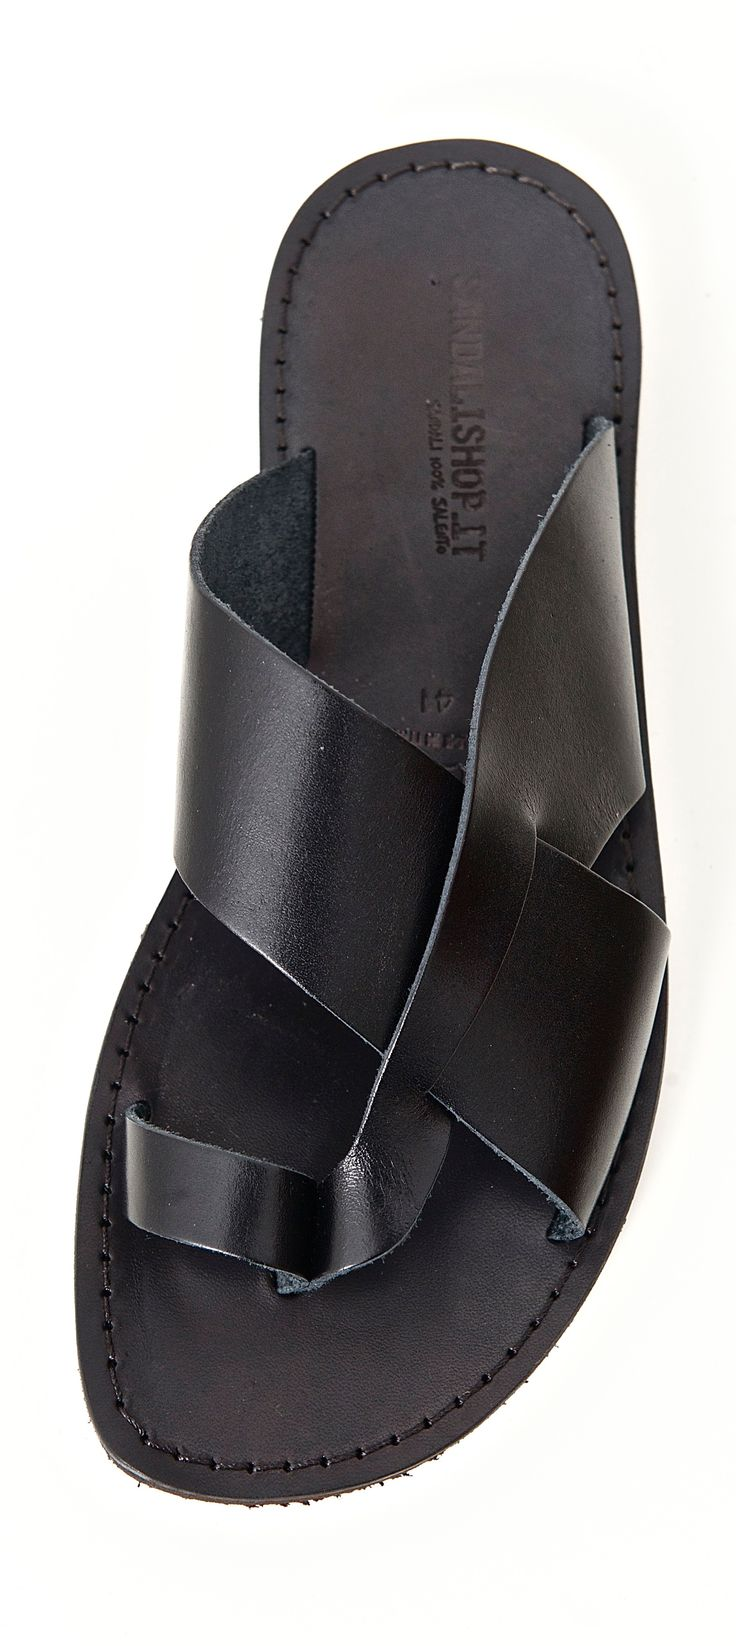 s rockport shoes travel made style for most comforter mens flip walking men comfortable leisure oxford flops